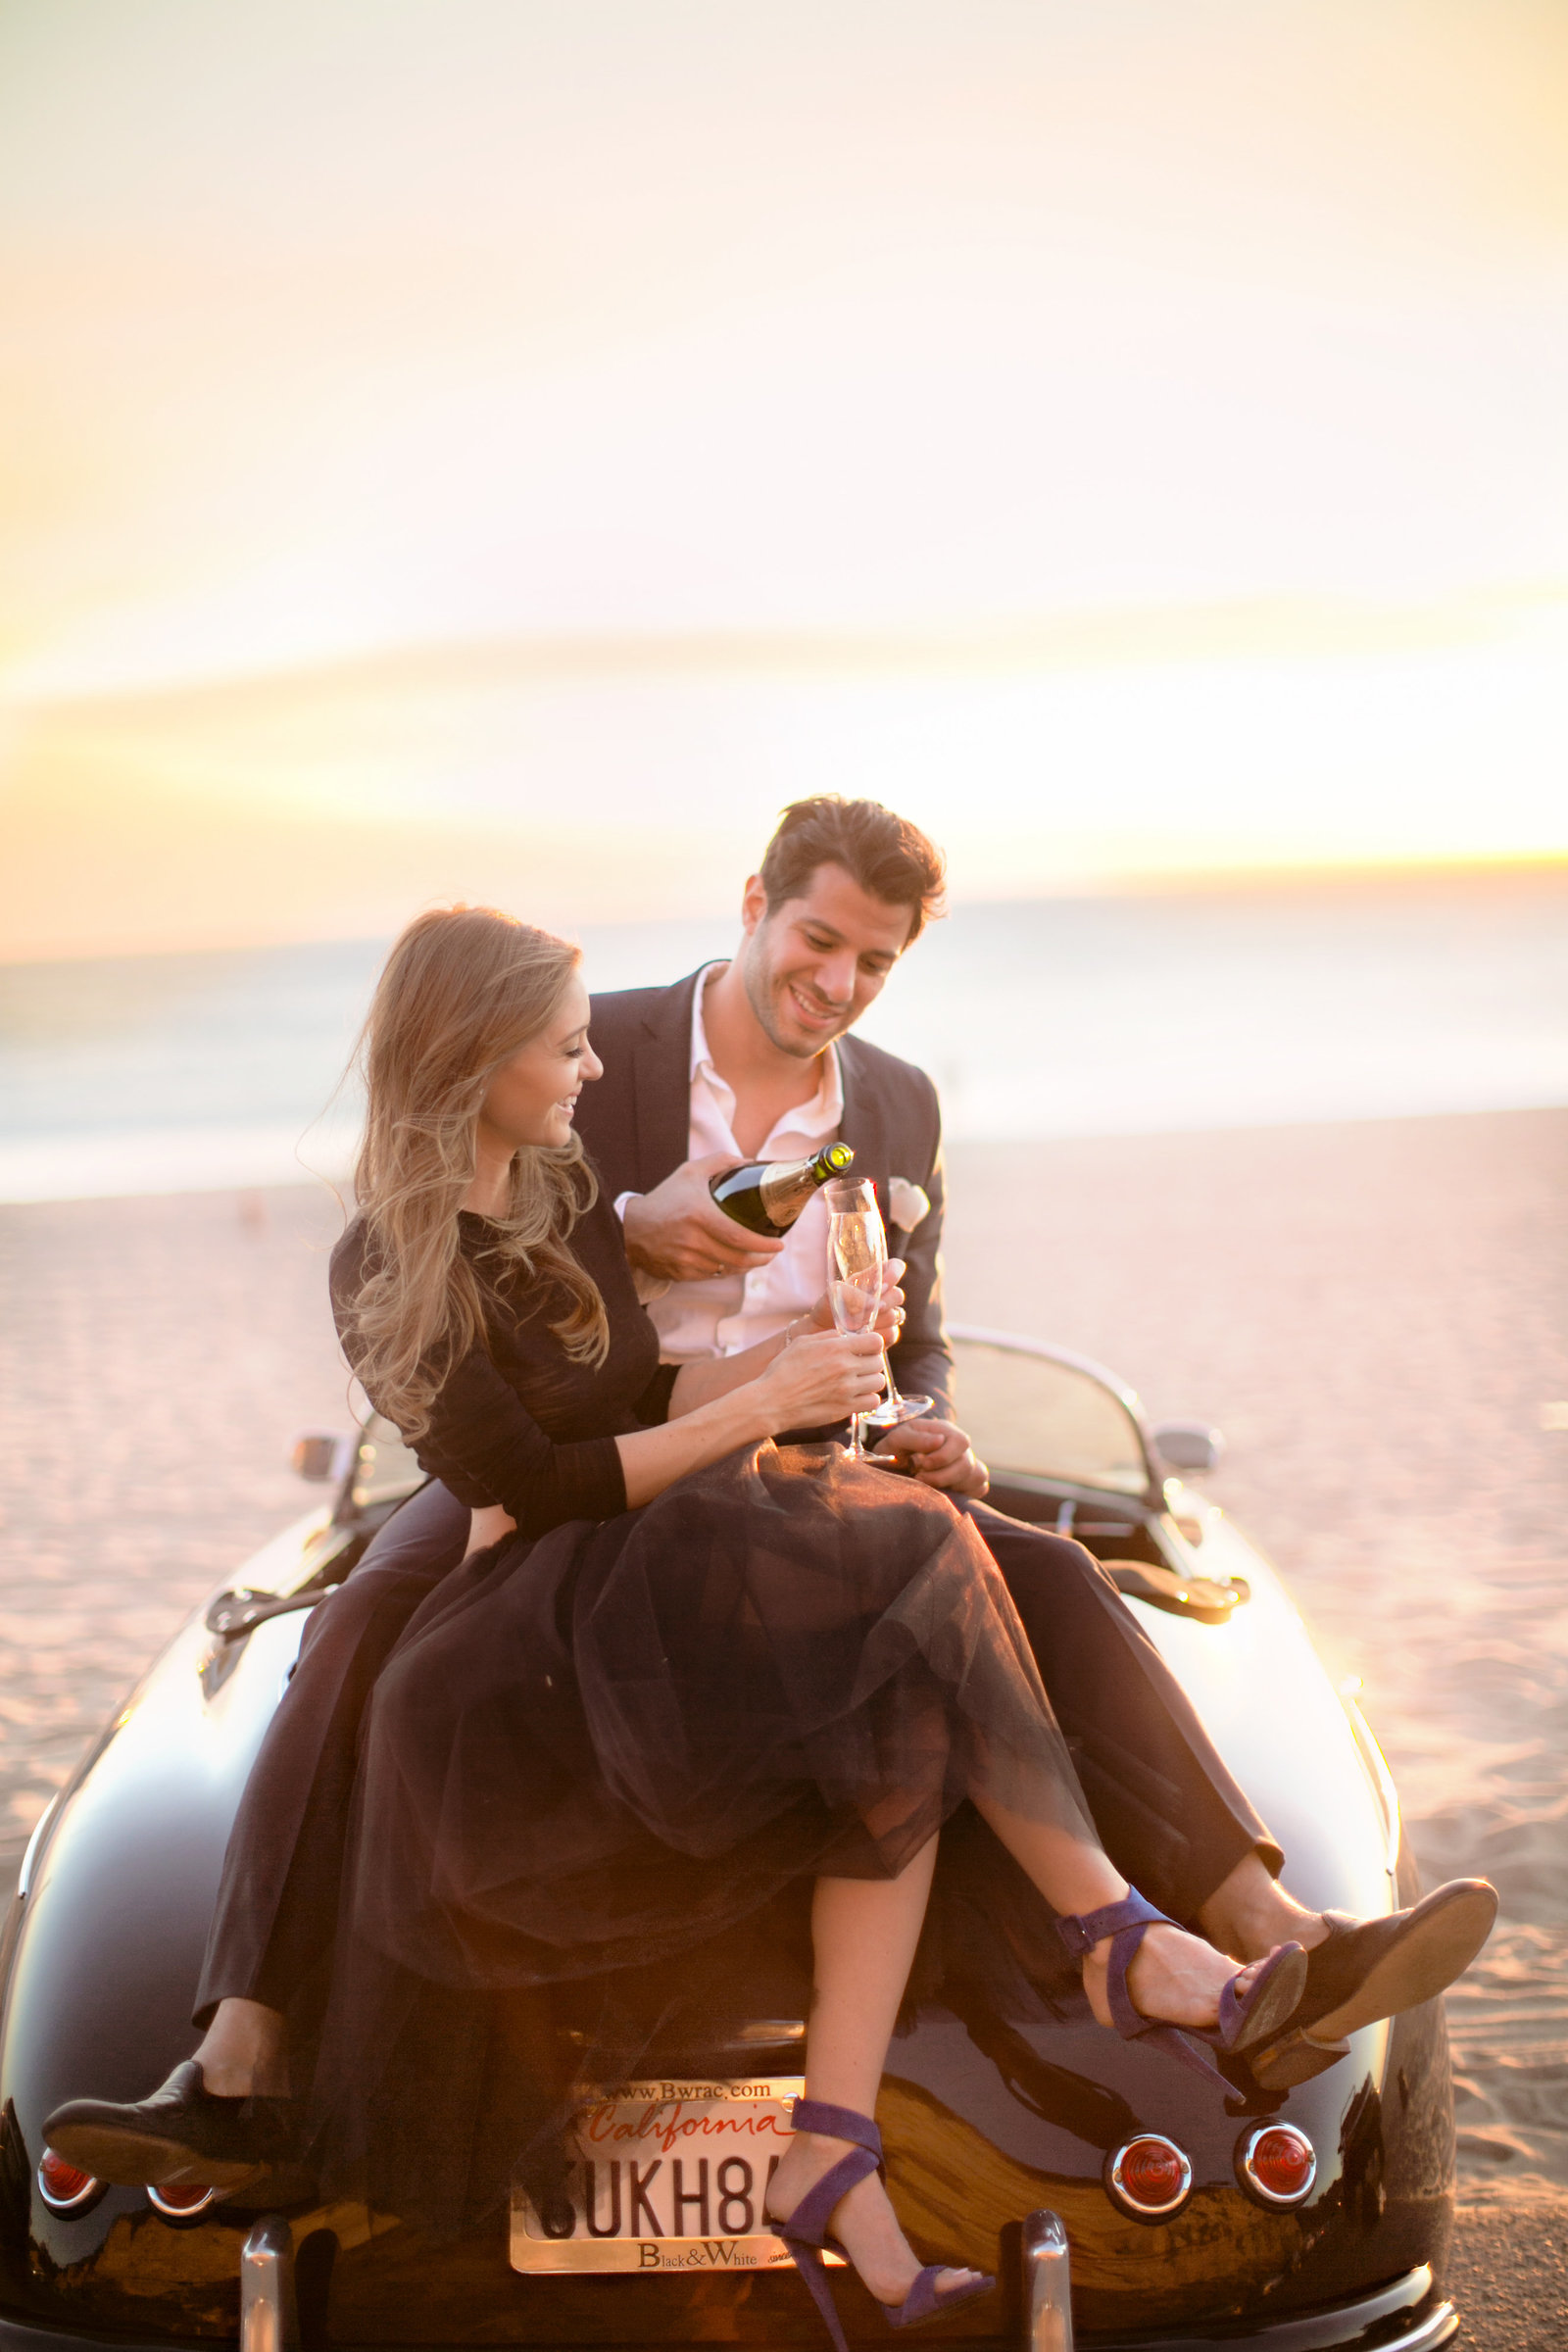 SOUTHERN_CALIFORNIA_WEDDING_PHOTOGRAPHER_JANA_WILLIAMS_bhldn-117-2